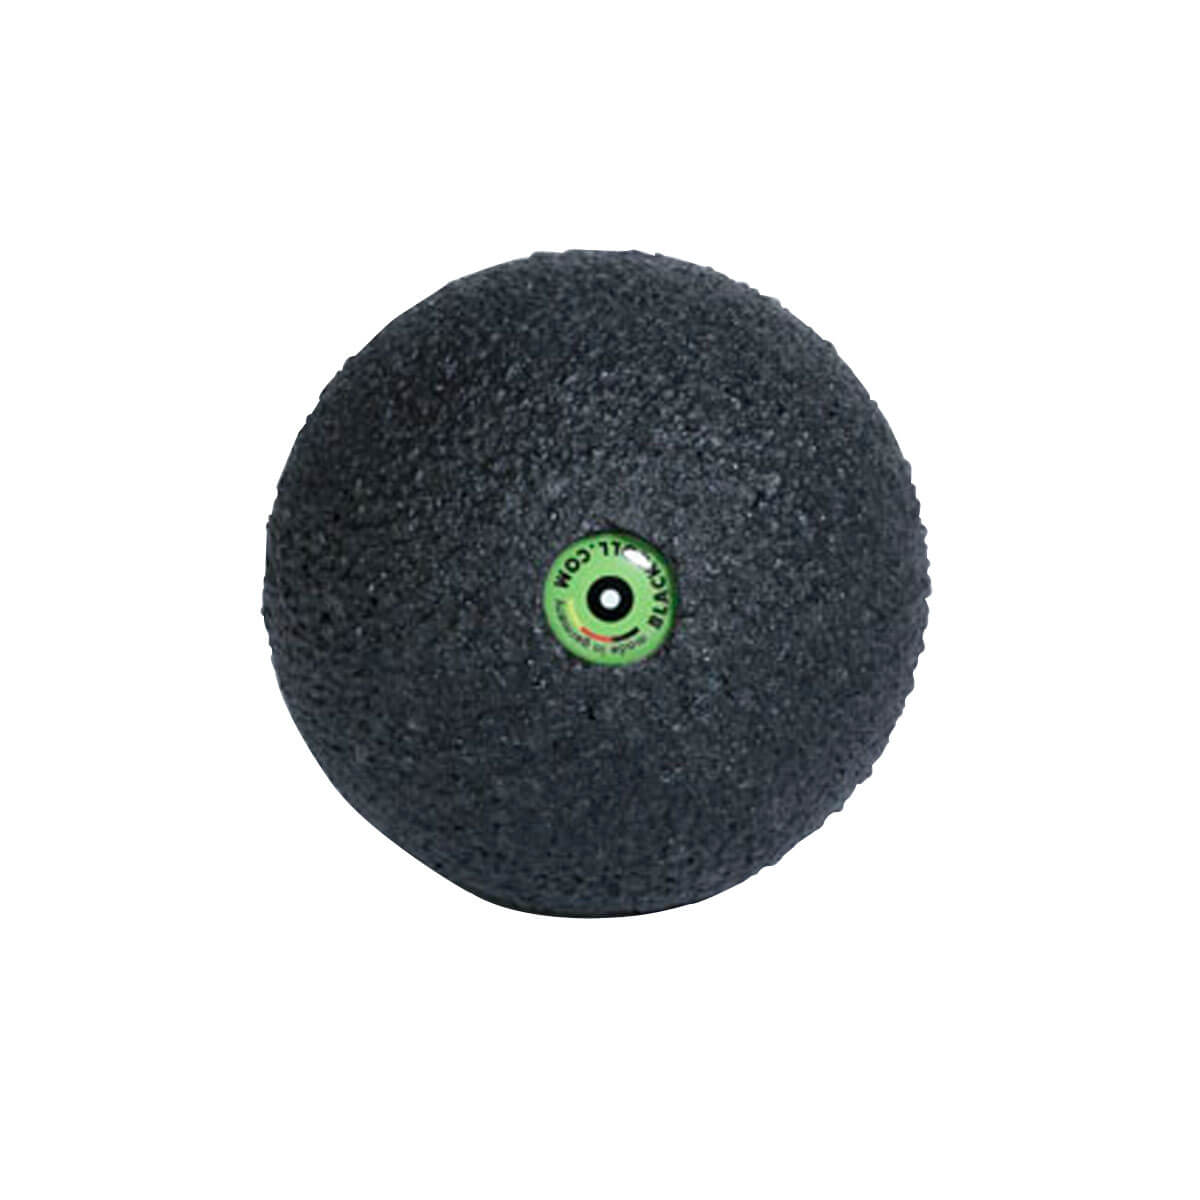 BLACKROLL® Self Massage Ball - Black 3.2